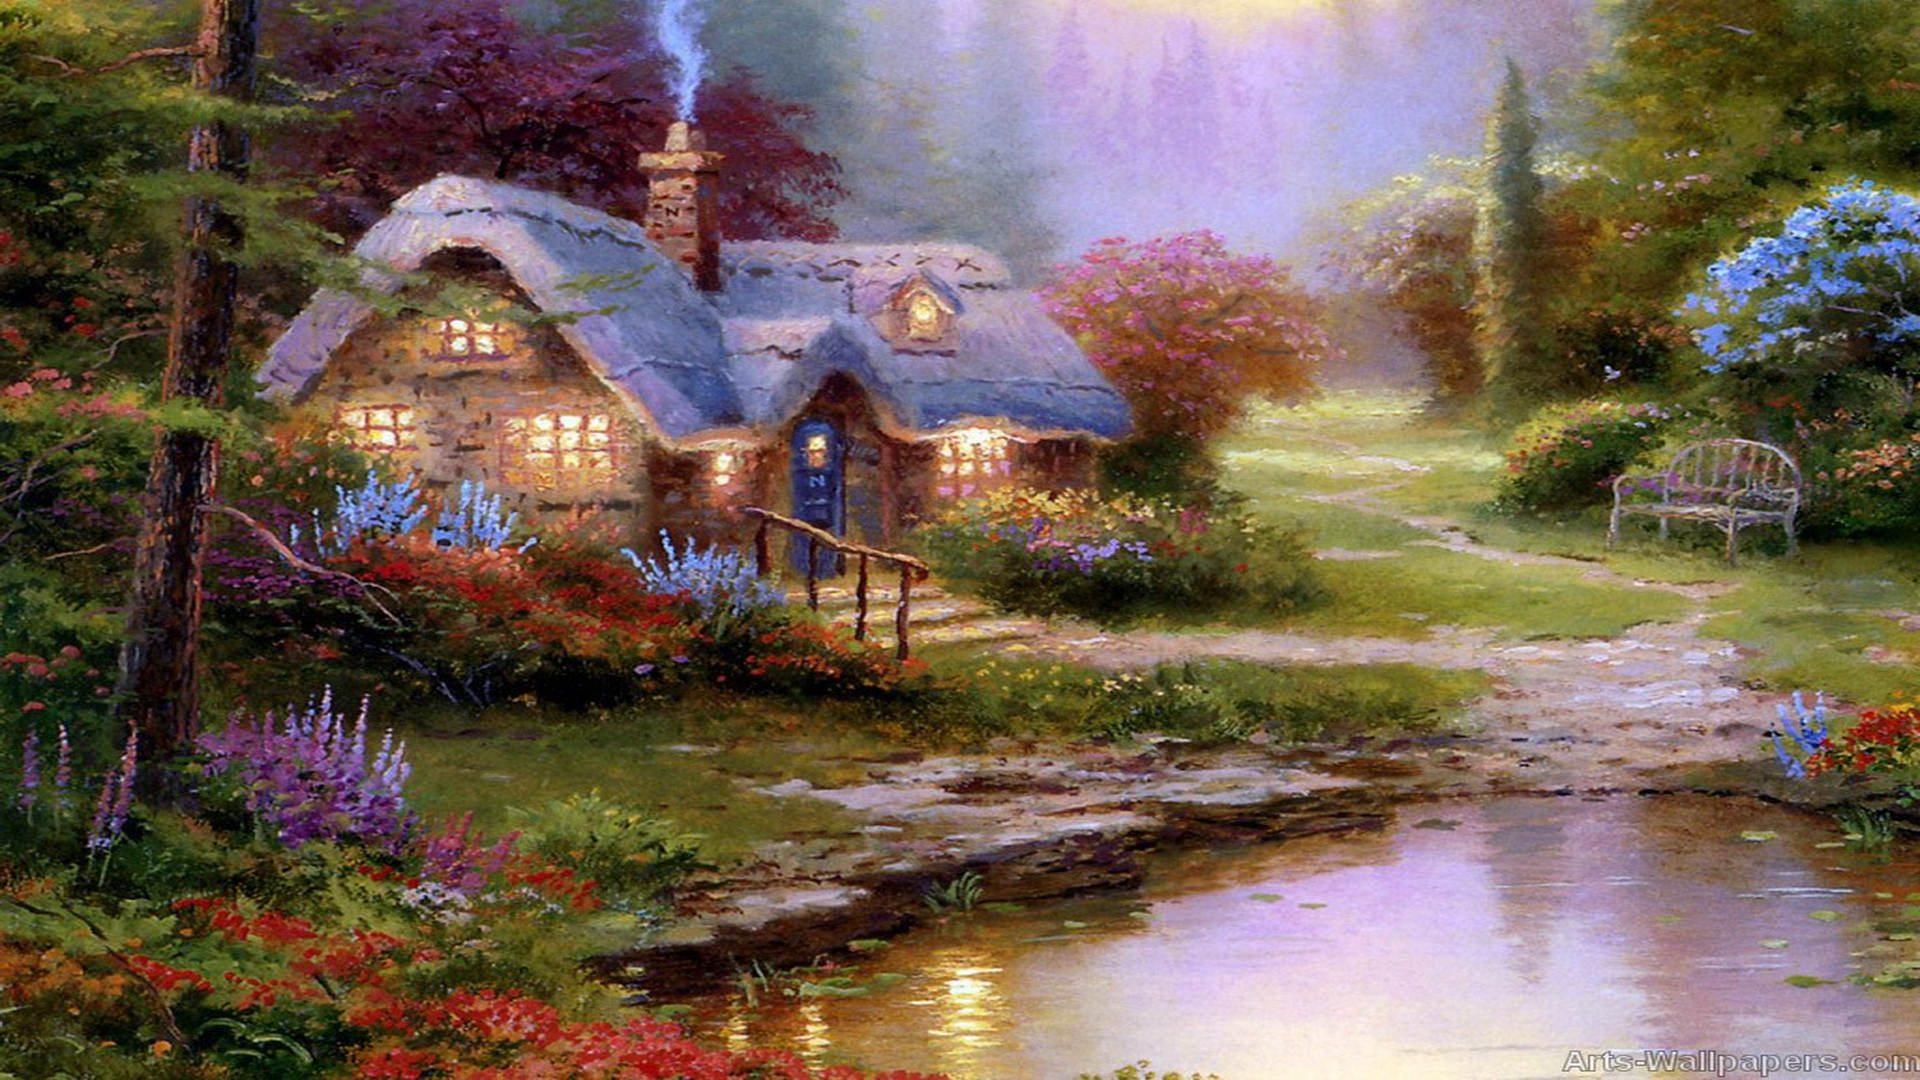 kinkade summer wallpaper drawing - photo #37